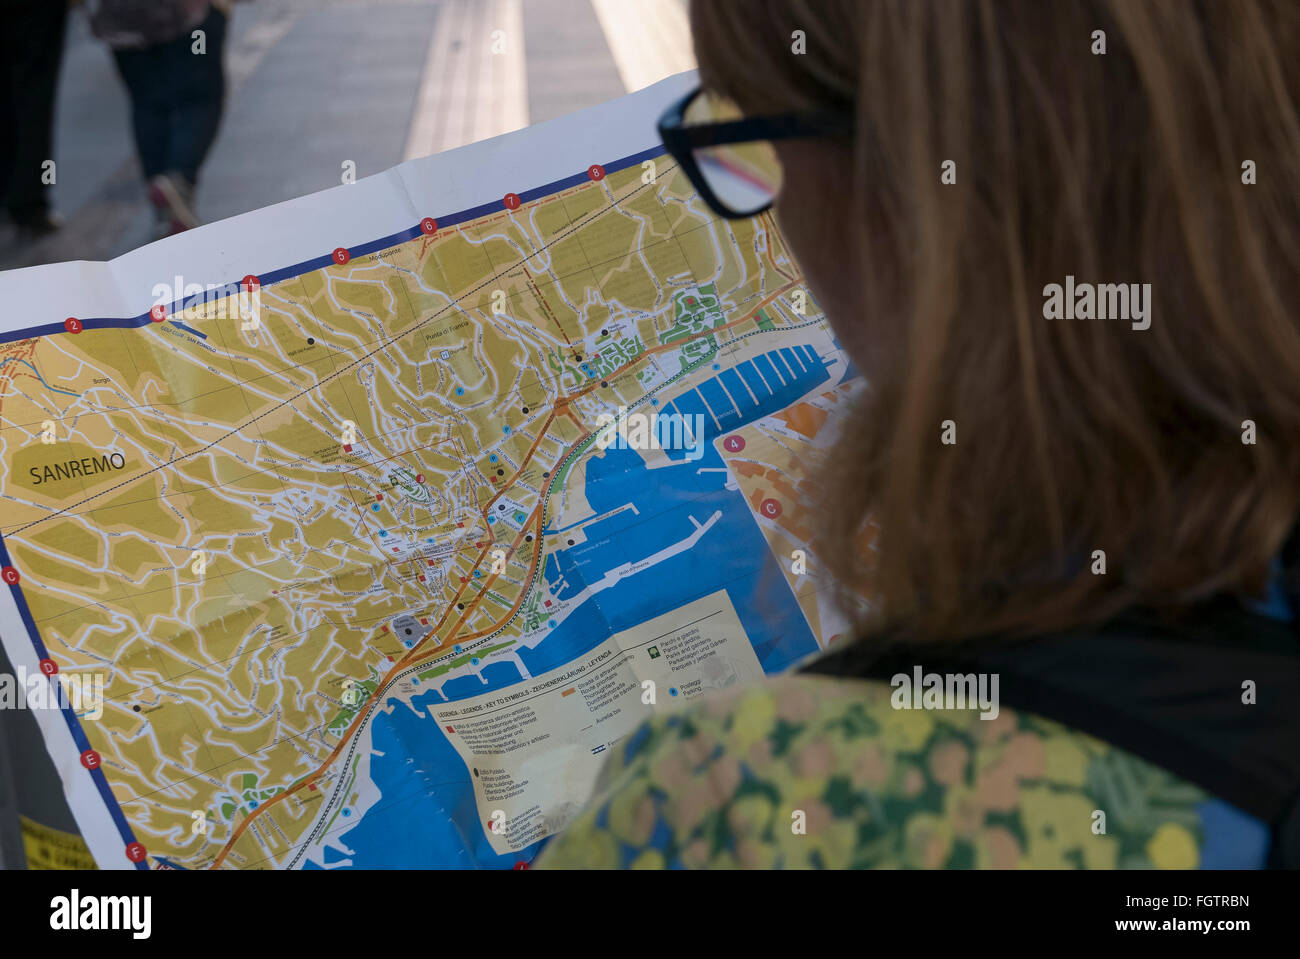 Sanremo Stock Photos Sanremo Stock Images Alamy